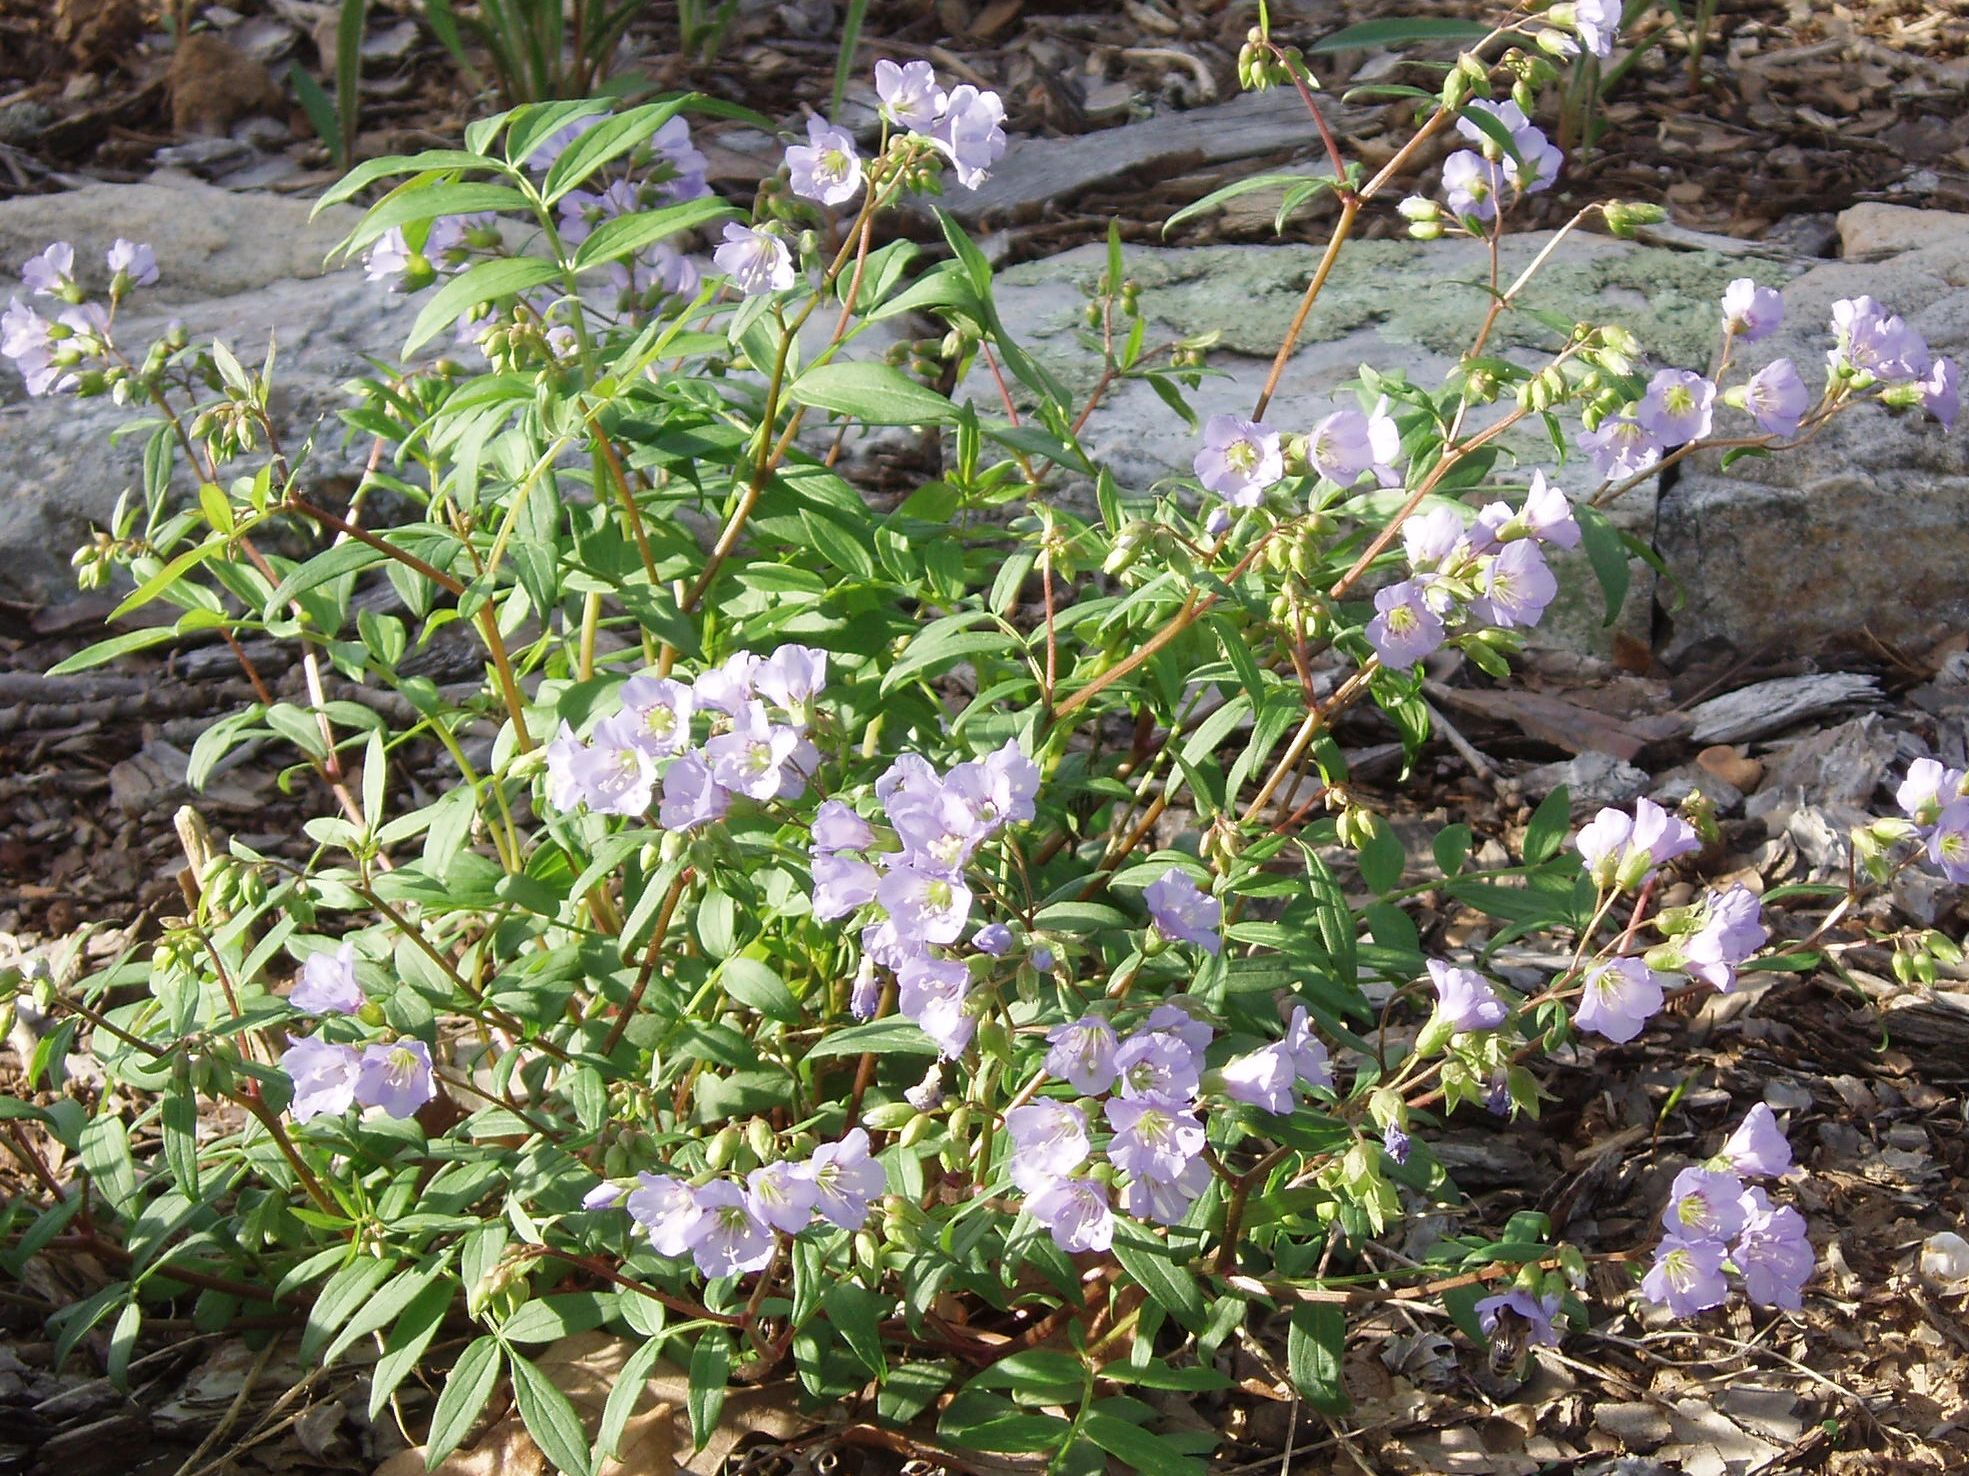 "{""blocks"":[{""key"":""afg9l"",""text"":""Polemonium reptans Jacob's Ladder - potted plants email john@easywildflowers.com "",""type"":""unstyled"",""depth"":0,""inlineStyleRanges"":[],""entityRanges"":[],""data"":{}}],""entityMap"":{}}"